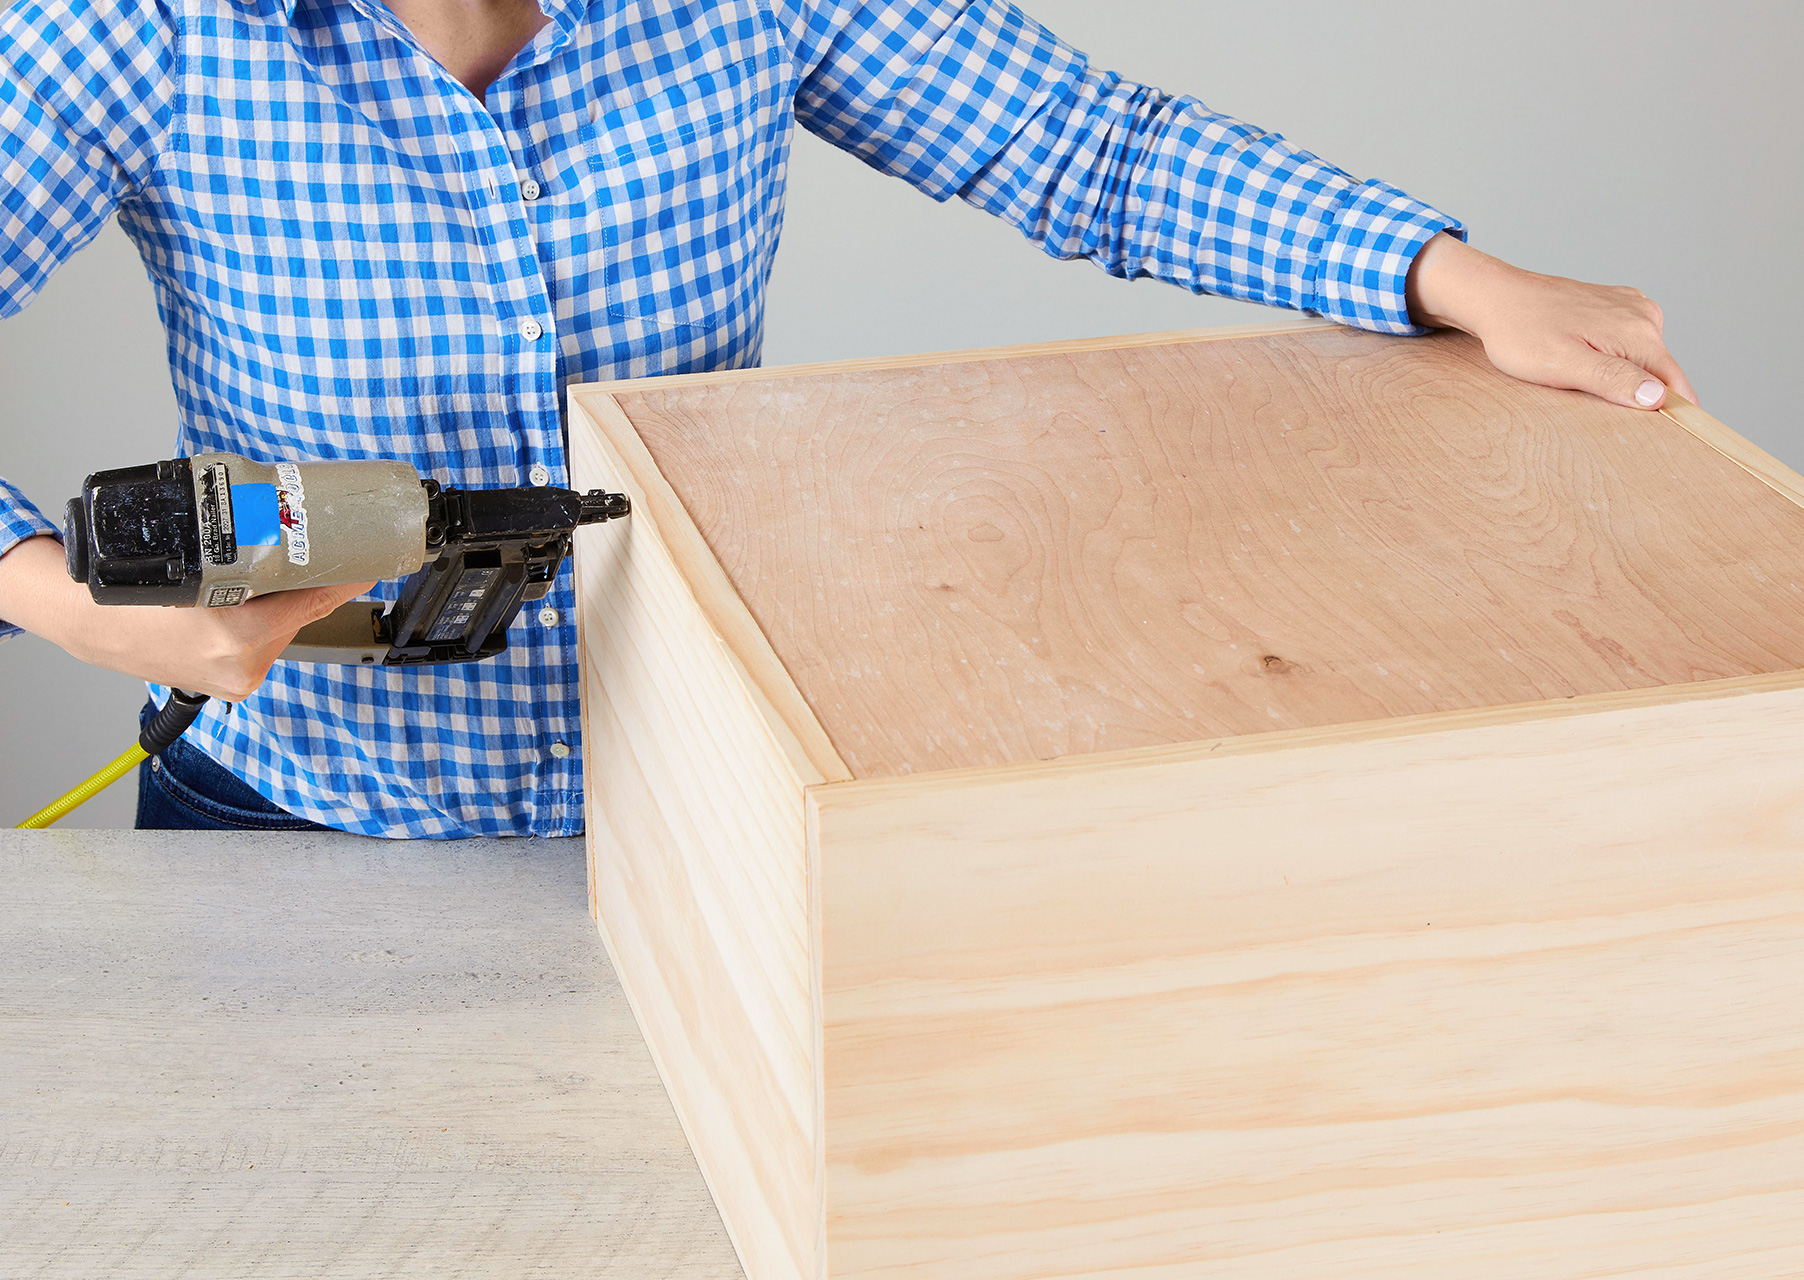 secure back piece to nightstand with nails